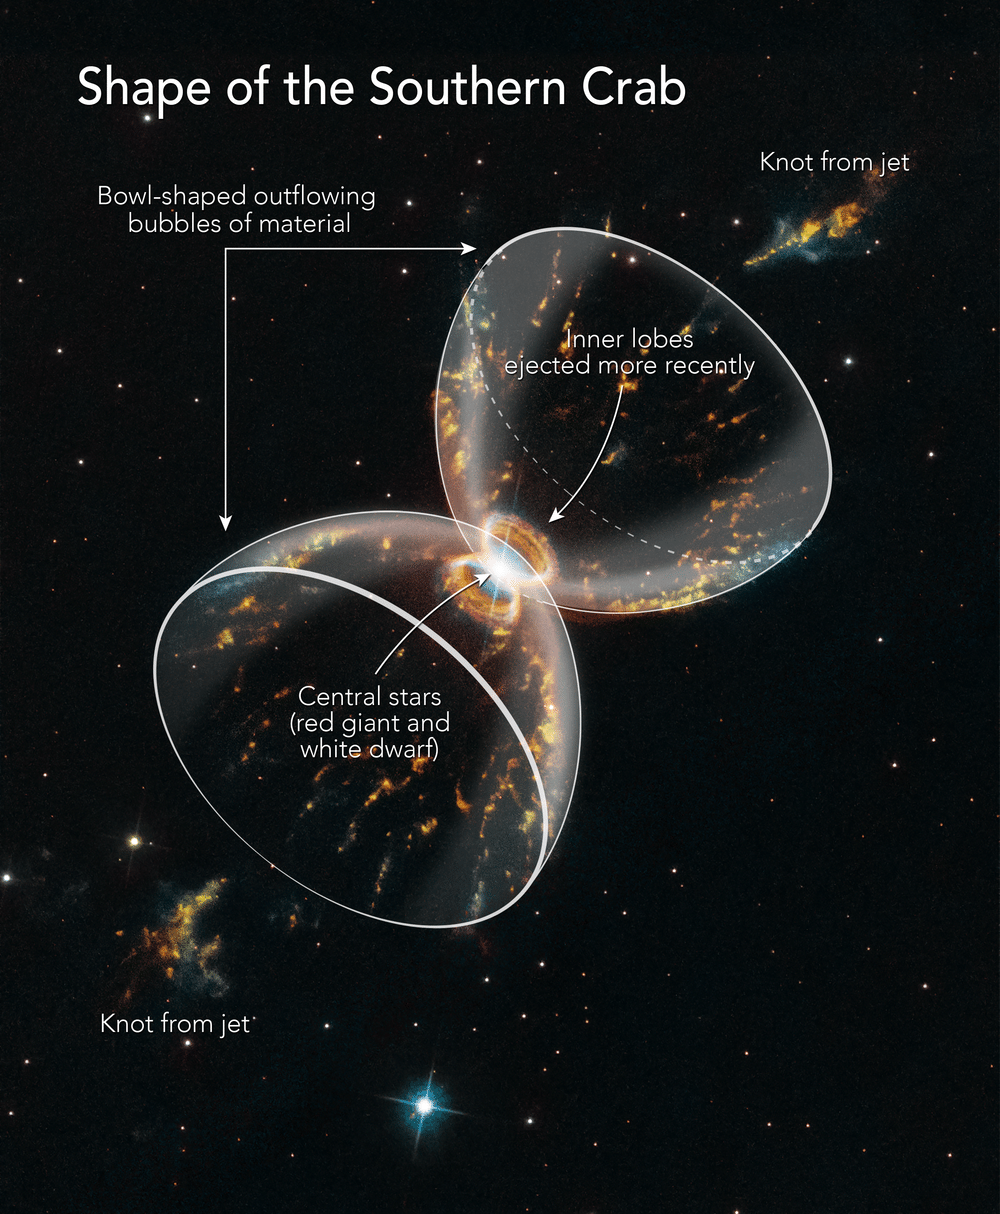 This stellar Crab Nebula image is the perfect way to